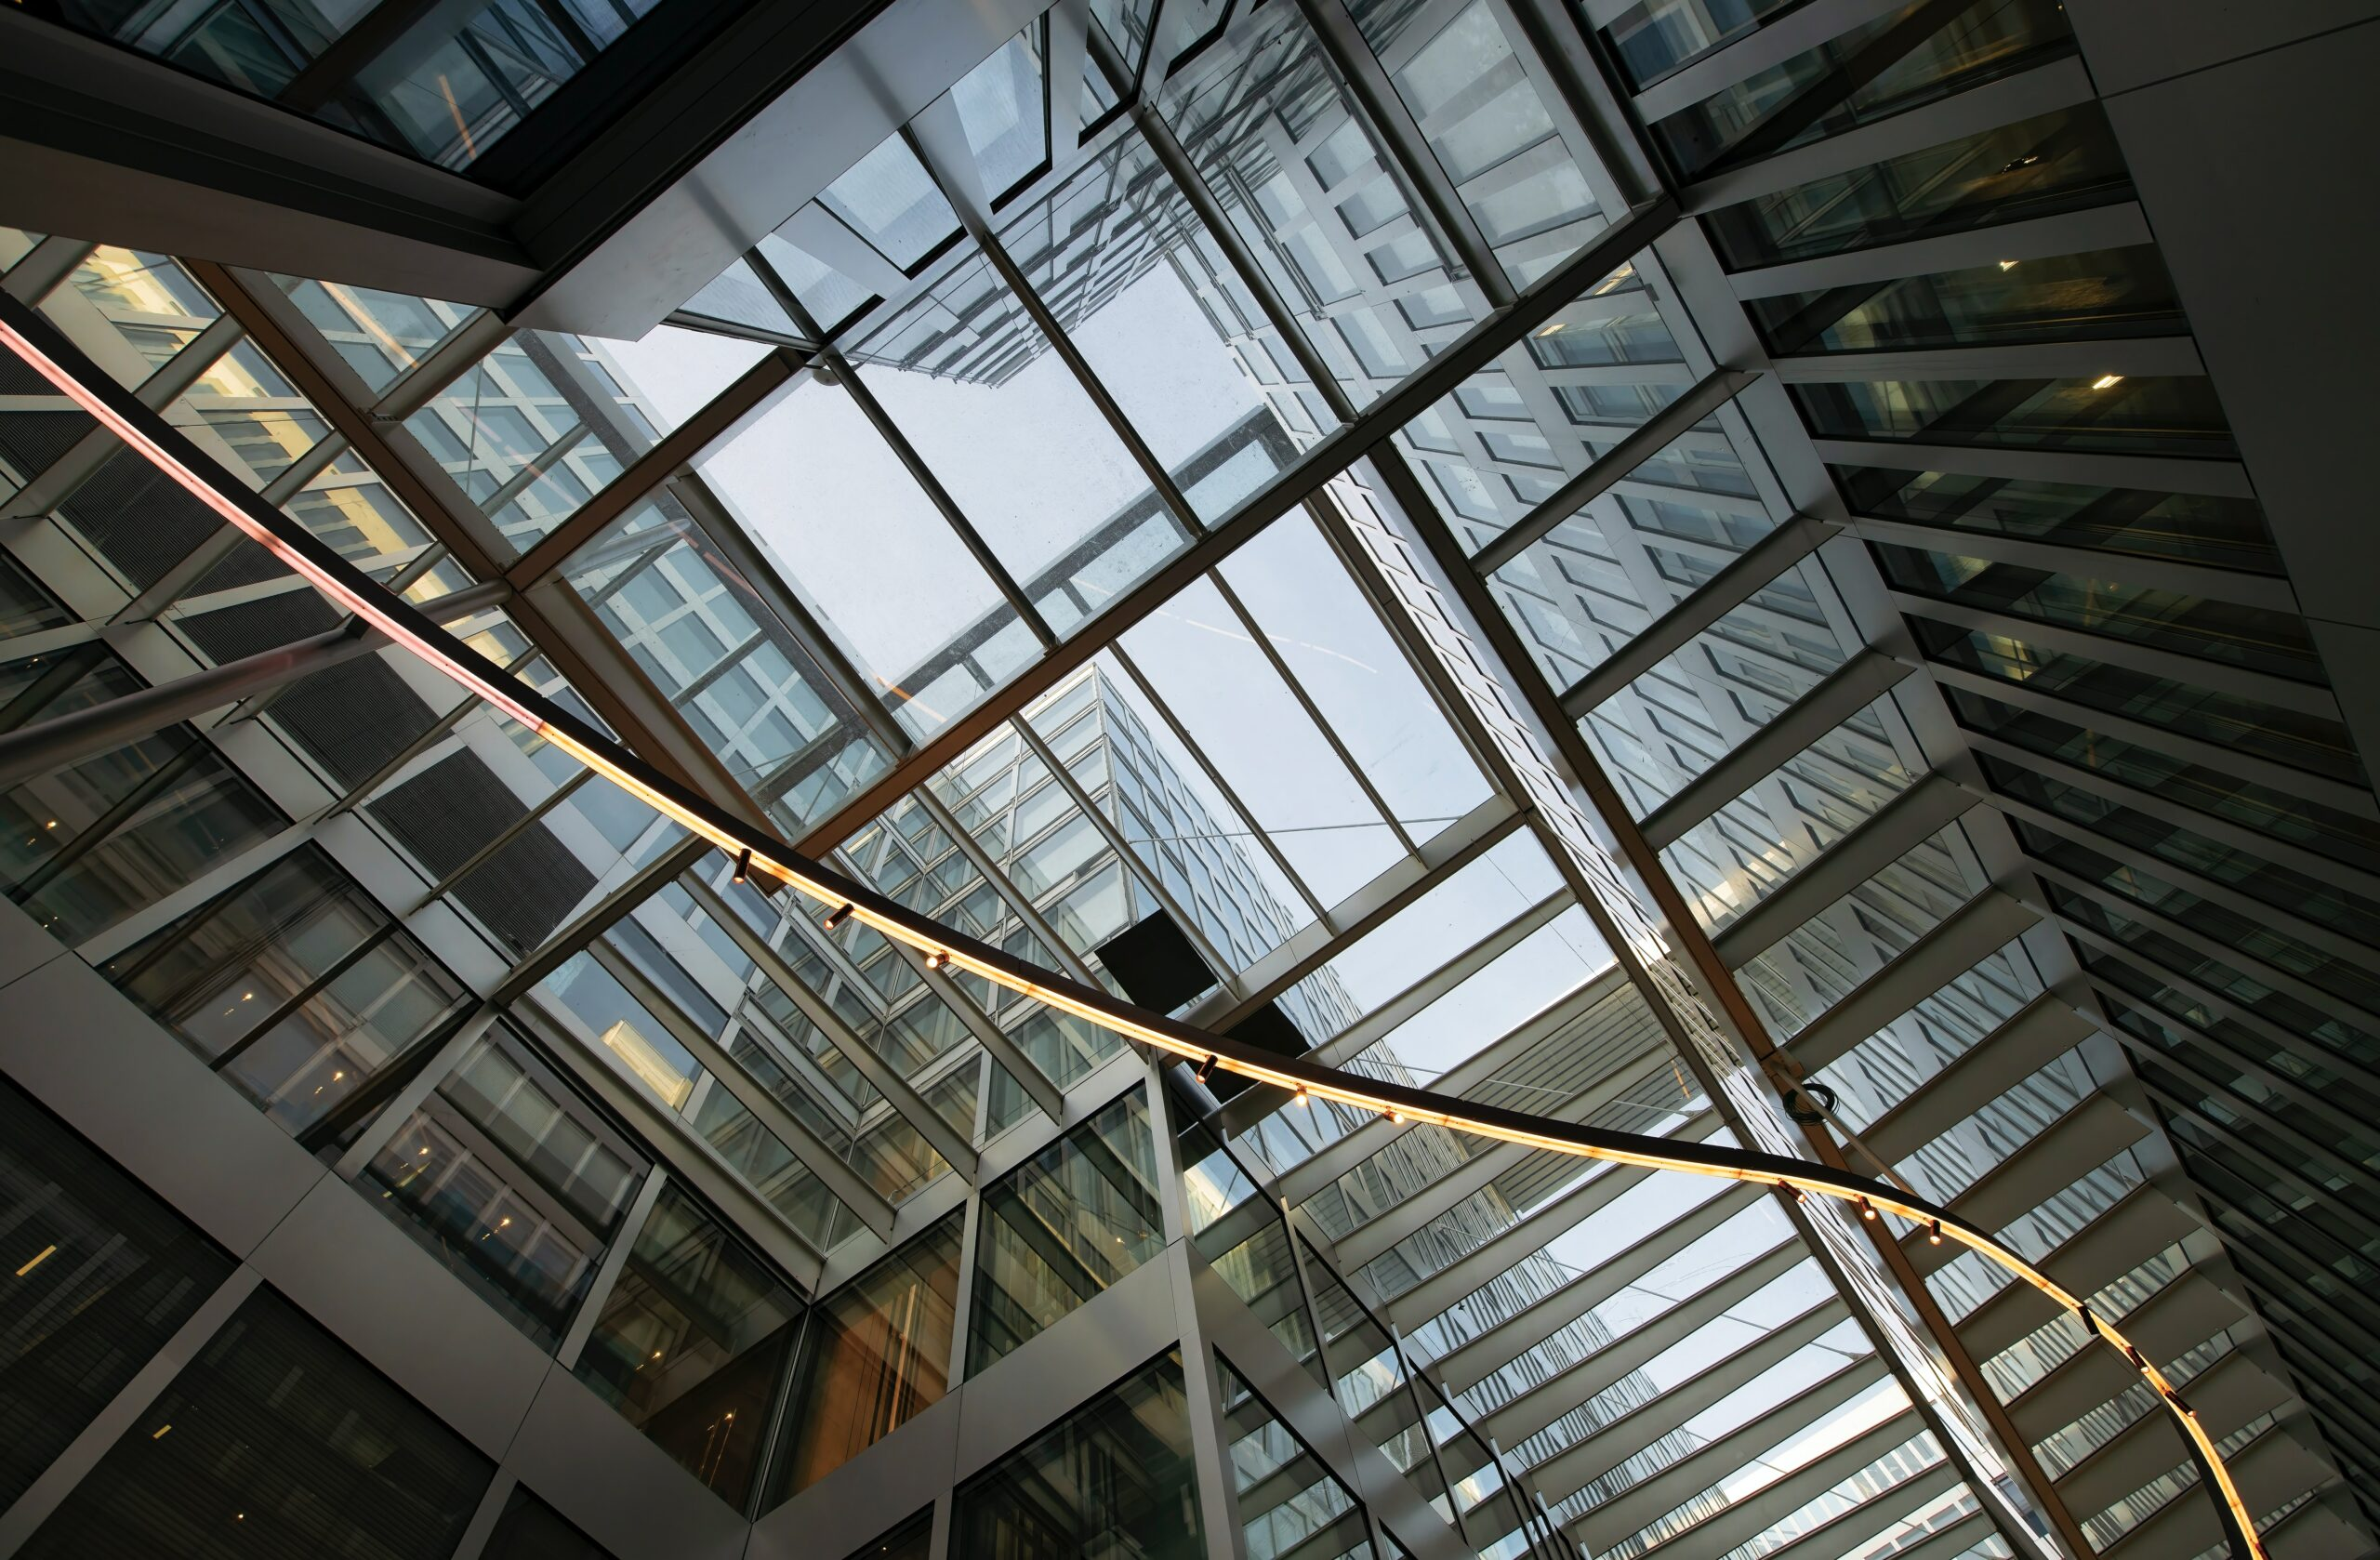 List of 3 property managers for commercial real estate in Germany